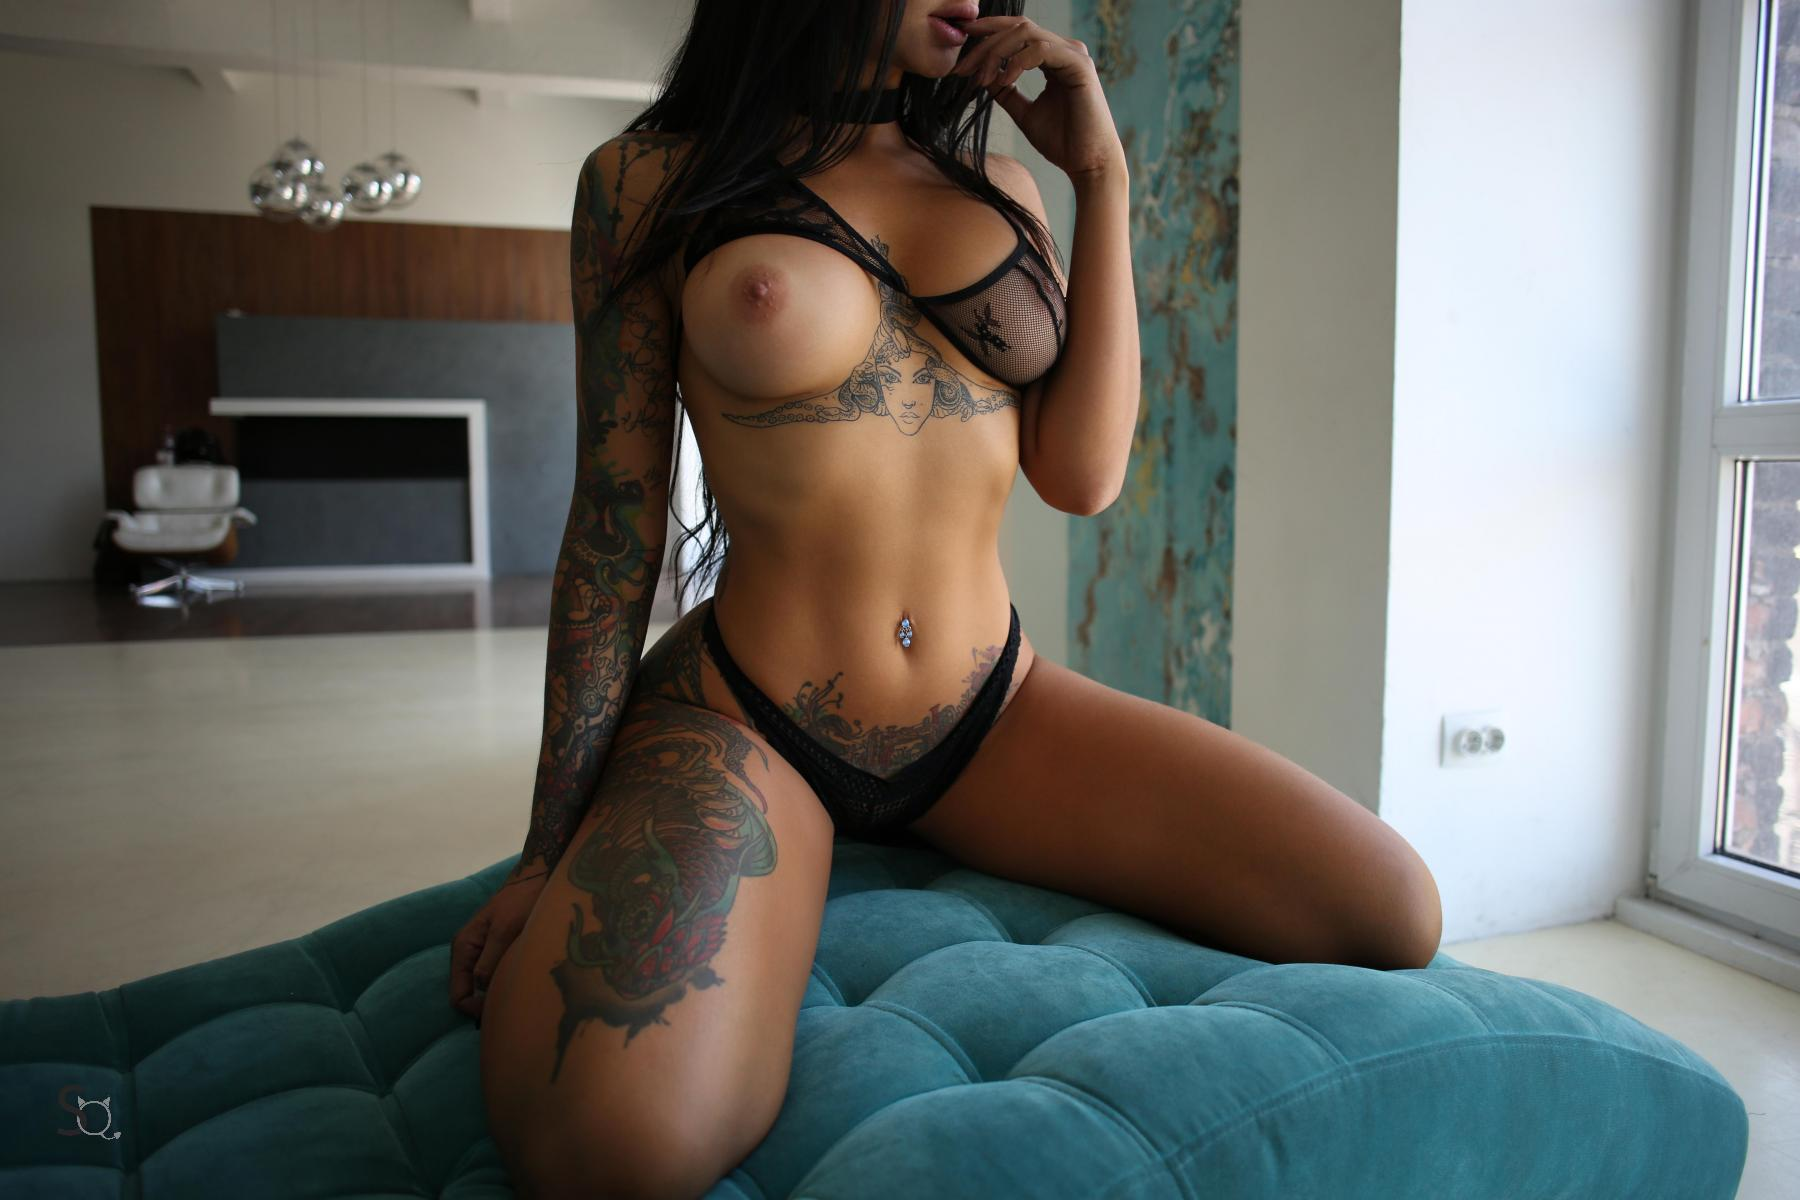 Lee With Hot Friend Porn OnlyFans Leaked Nudes 46